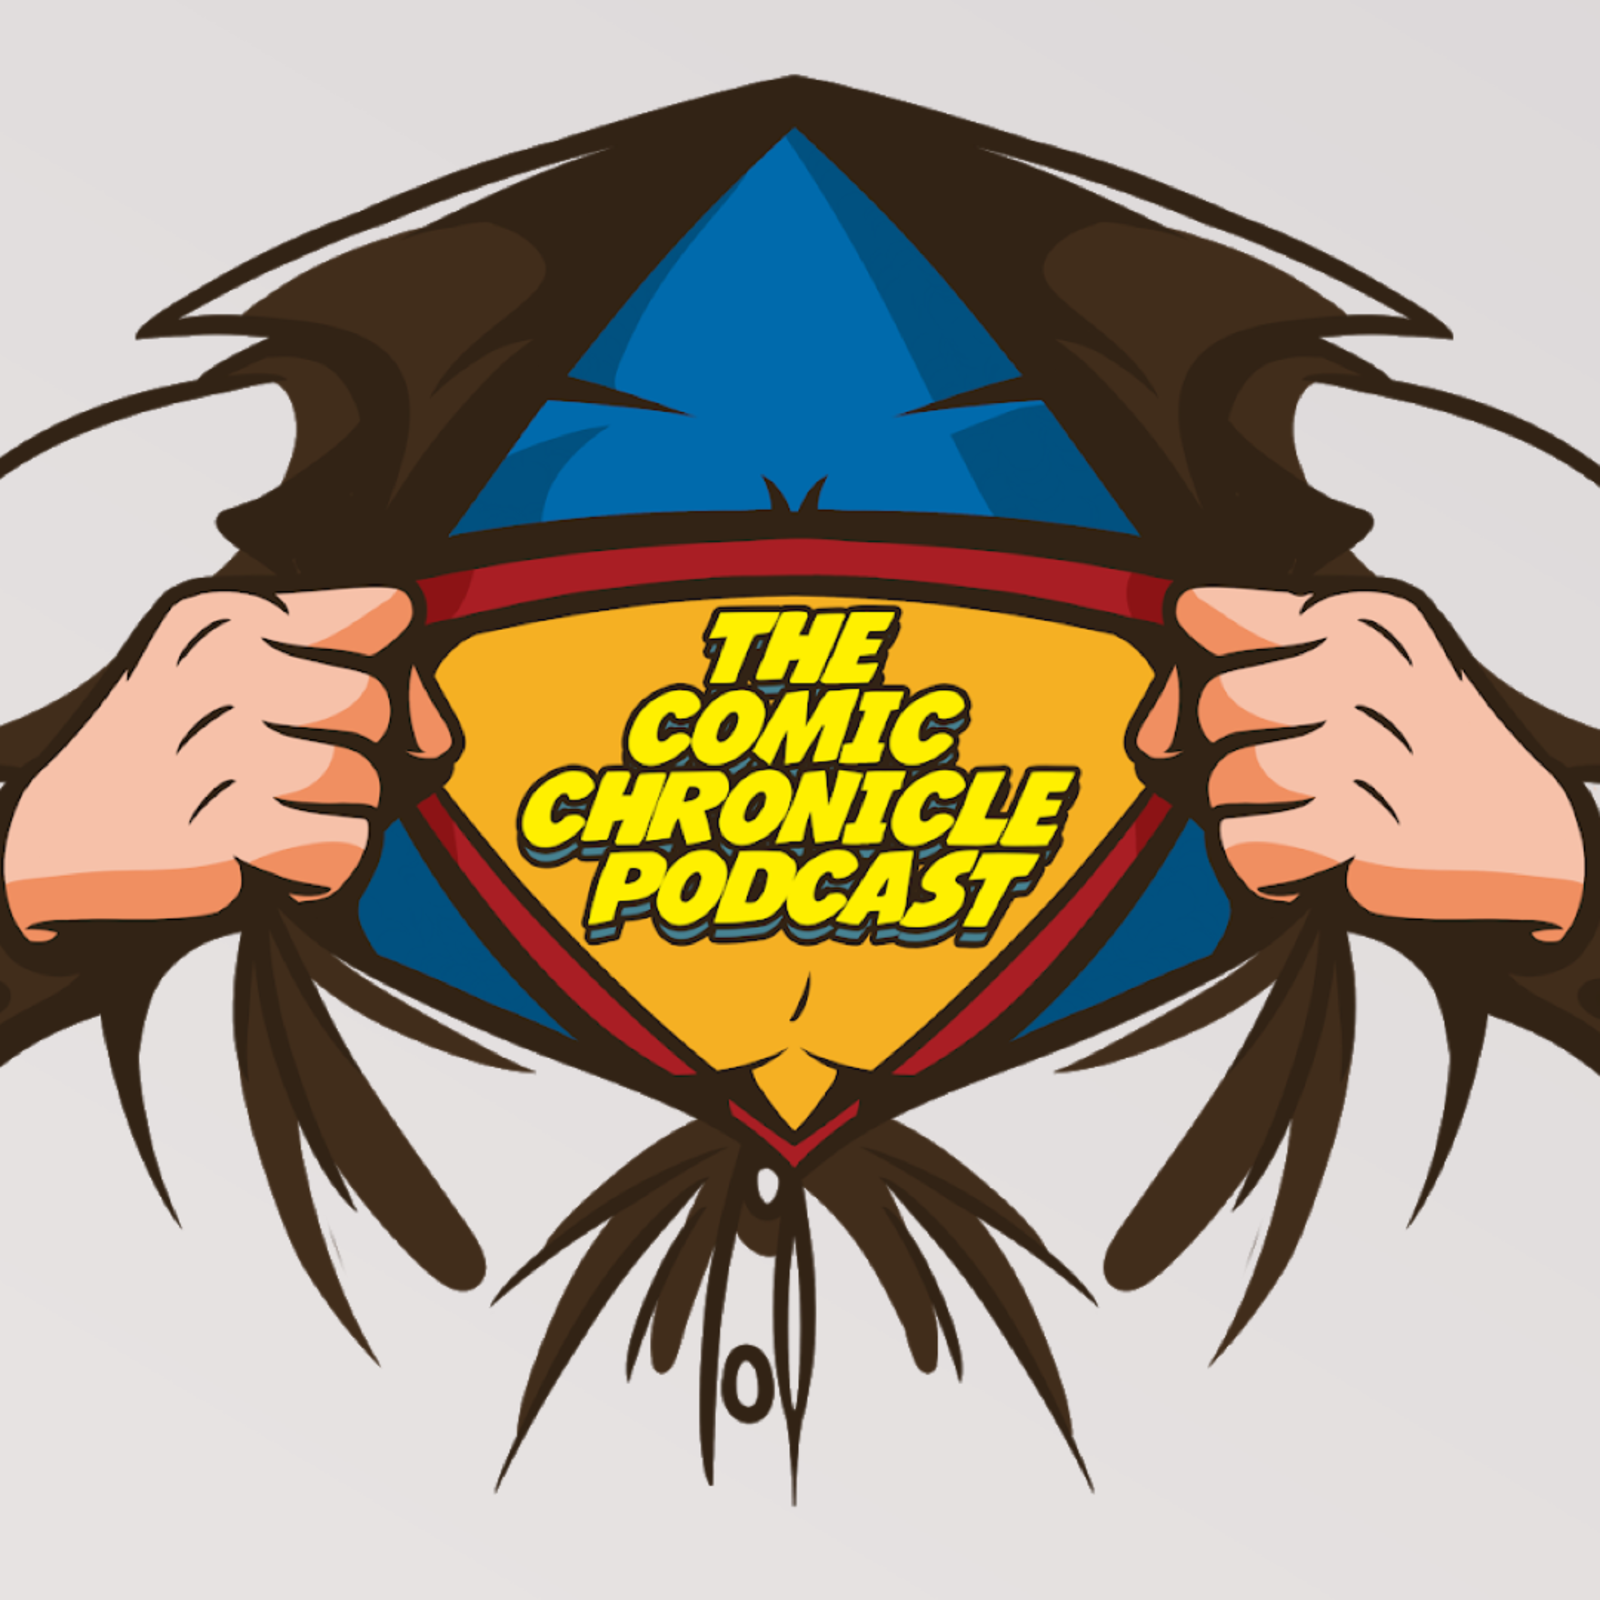 The Comic Chronicle Podcast